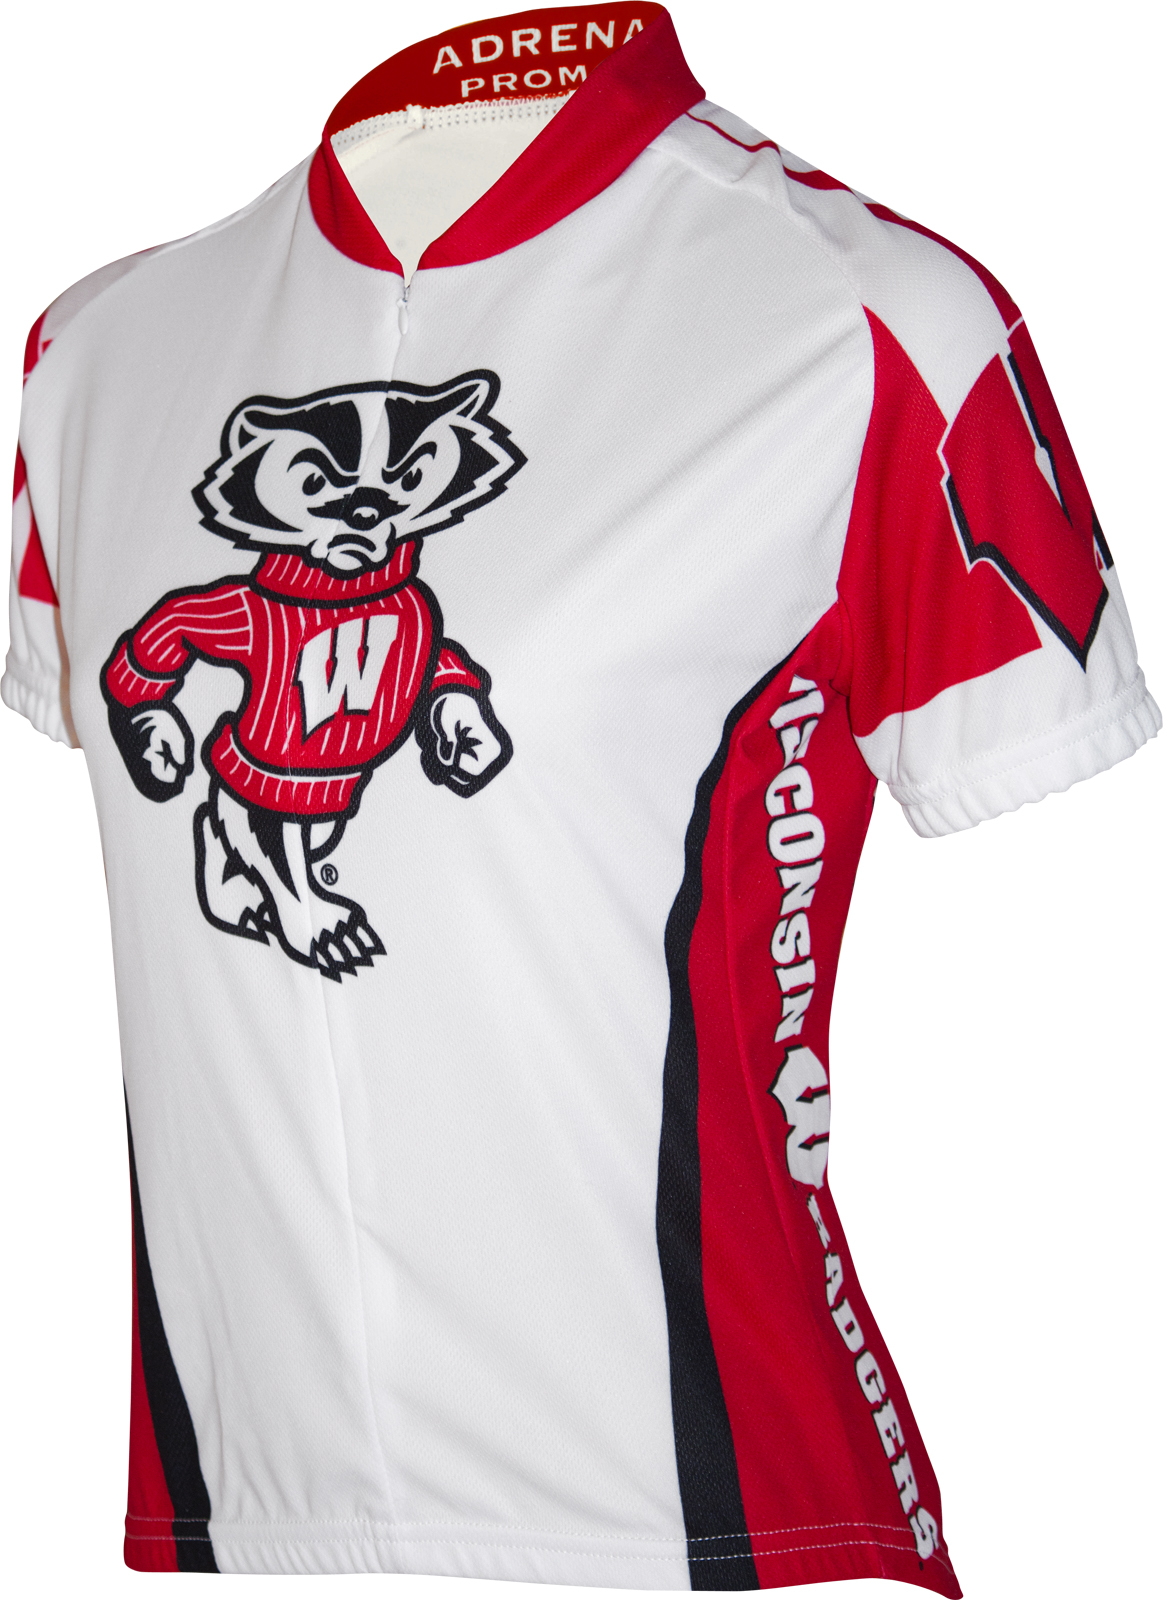 University of Wisconsin Badgers Womens Cycling Jersey